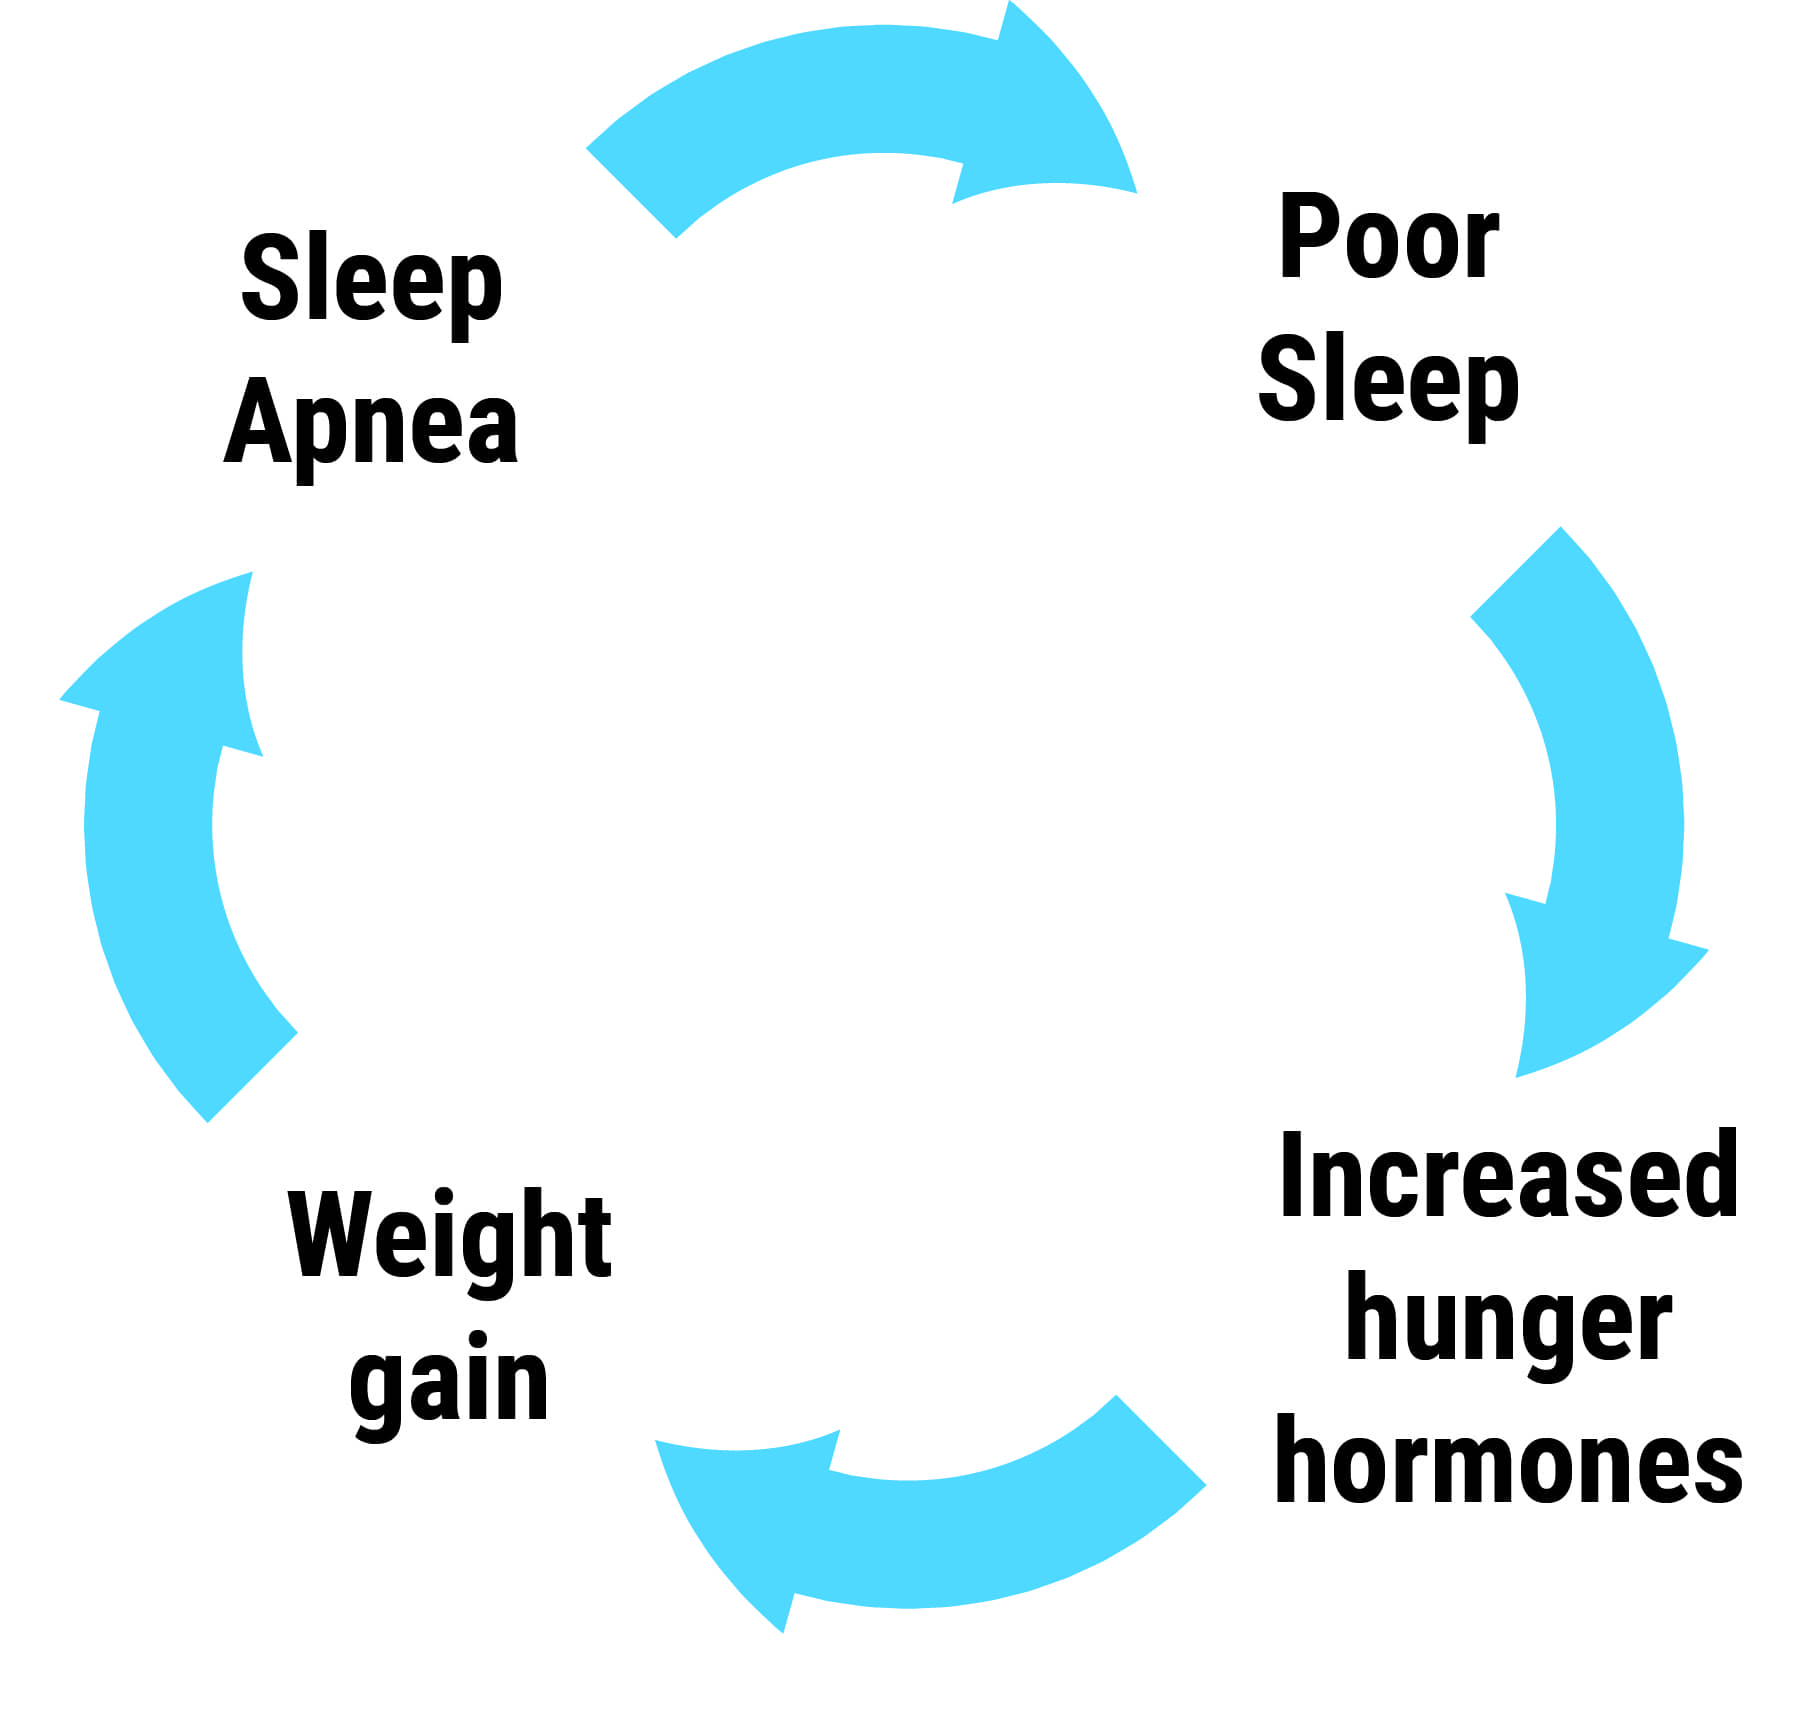 A continual cycle that shows that sleep apnea leads to poor sleep which leads to increased hunger hormones which weight gain. After that, the process repeats.